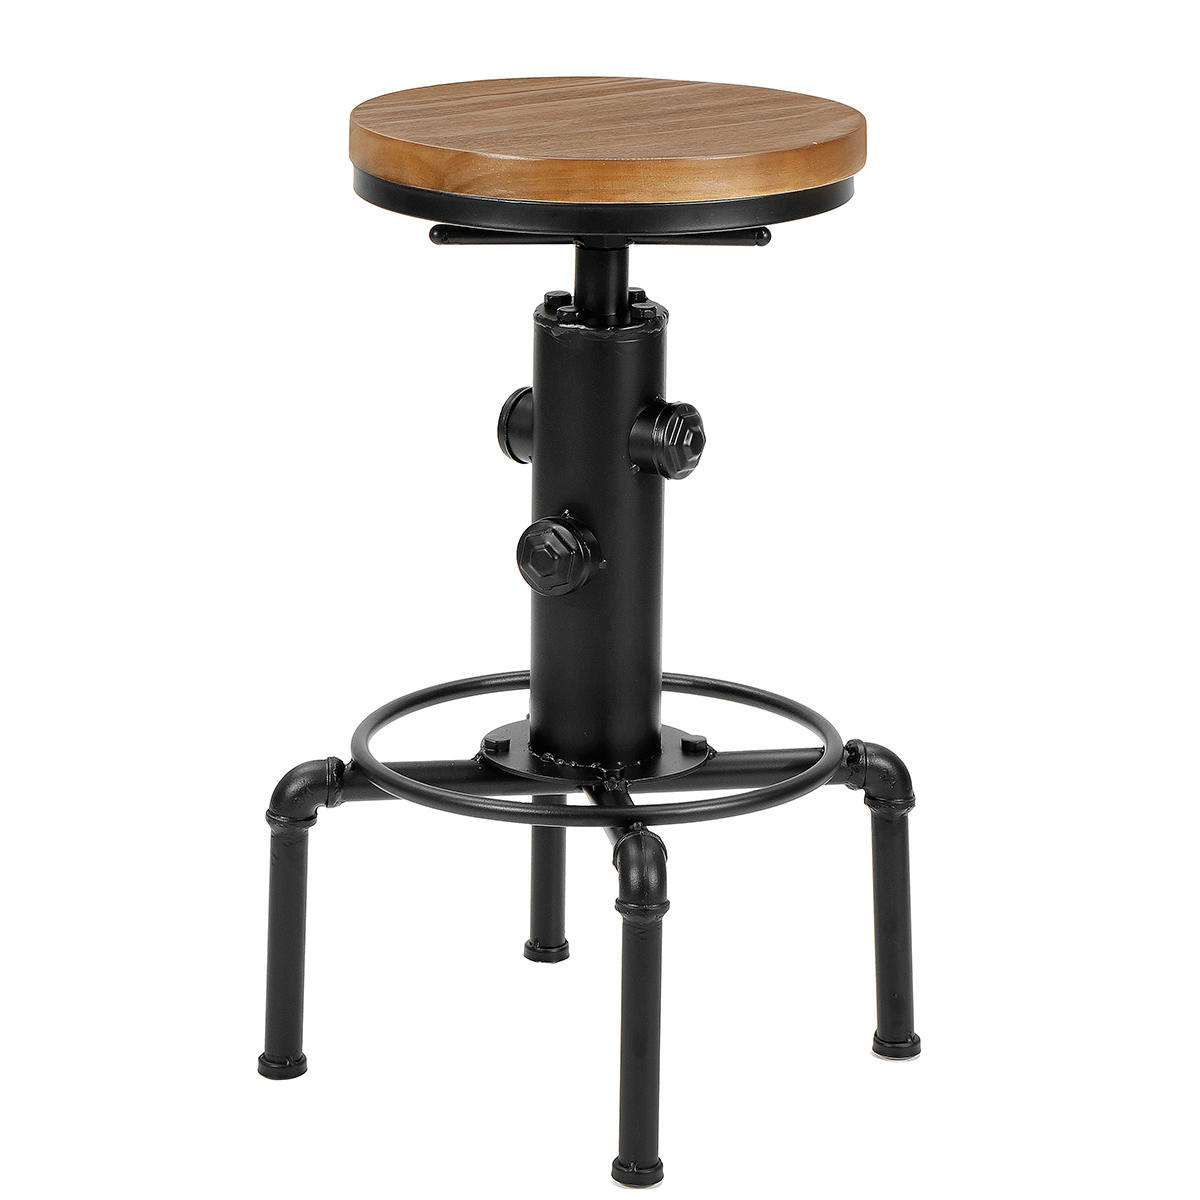 Picture of: Vintage Unique Industrial Fire Hydrant Metal Black Bar Drum Stool Round Wooden Top Kitchen Side Table Adjustable Height Sale Banggood Com Sold Out Arrival Notice